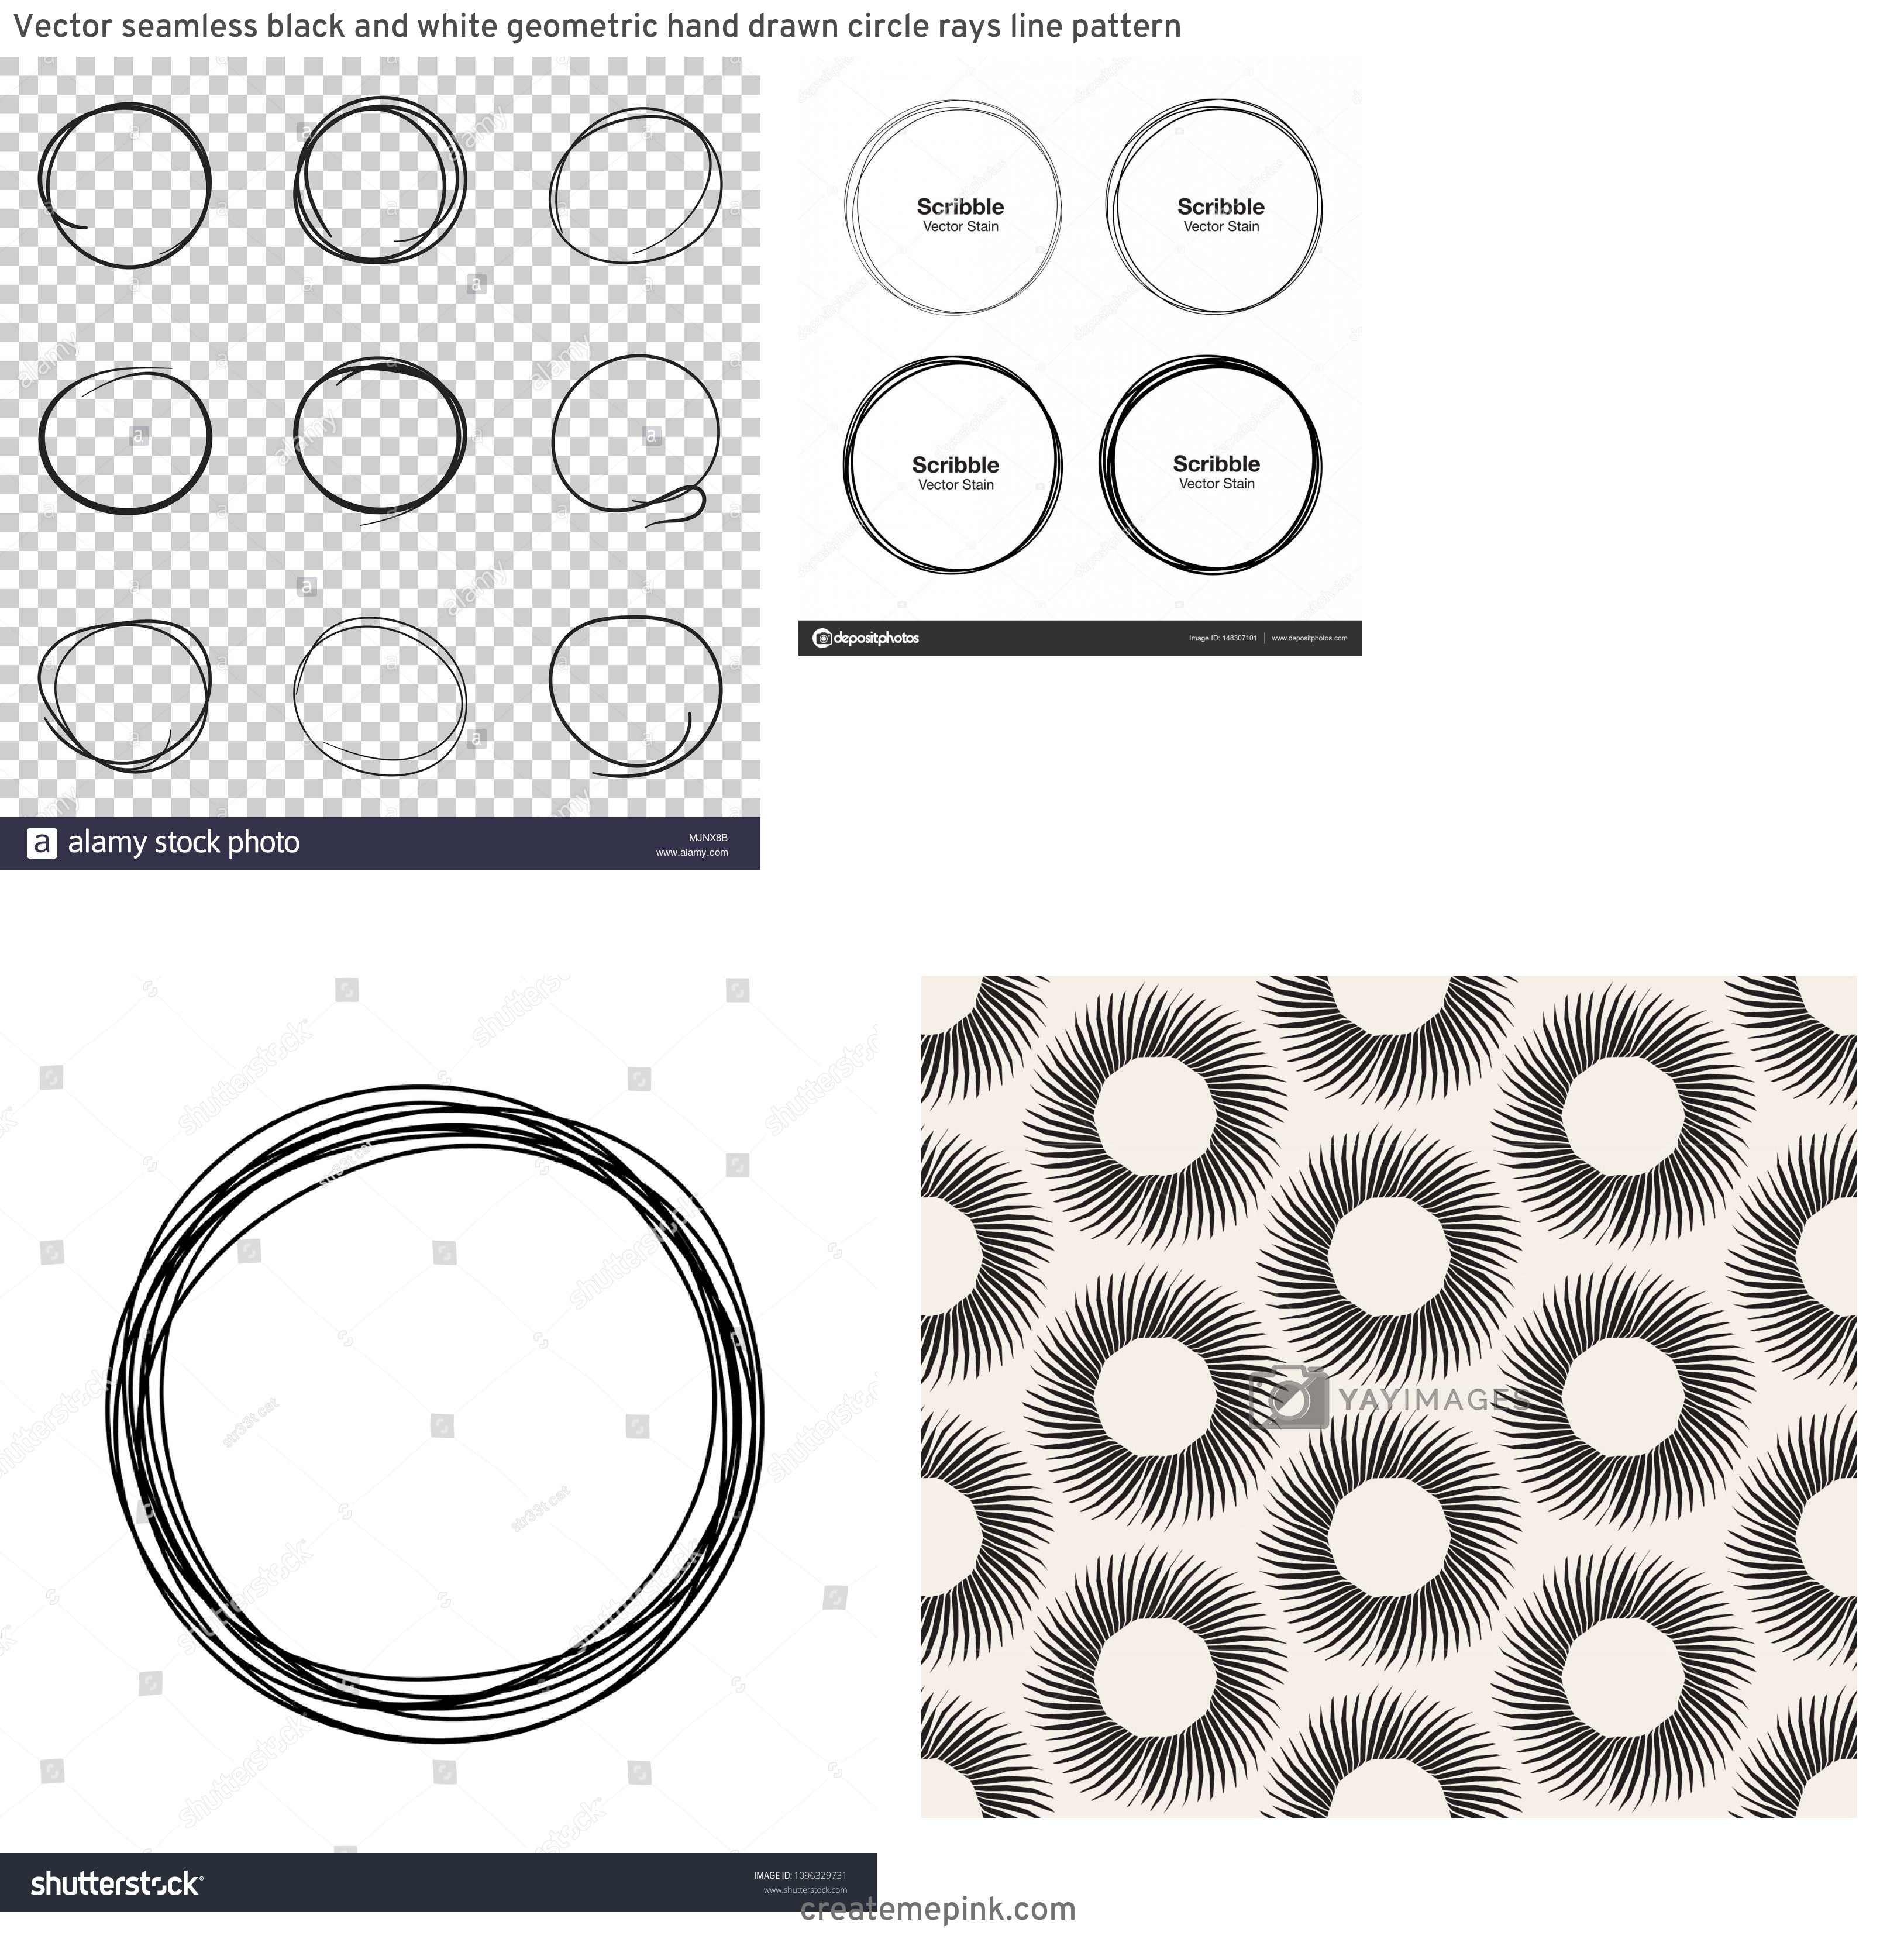 Circle Hand Drawn Vector Line: Vector Seamless Black And White Geometric Hand Drawn Circle Rays Line Pattern